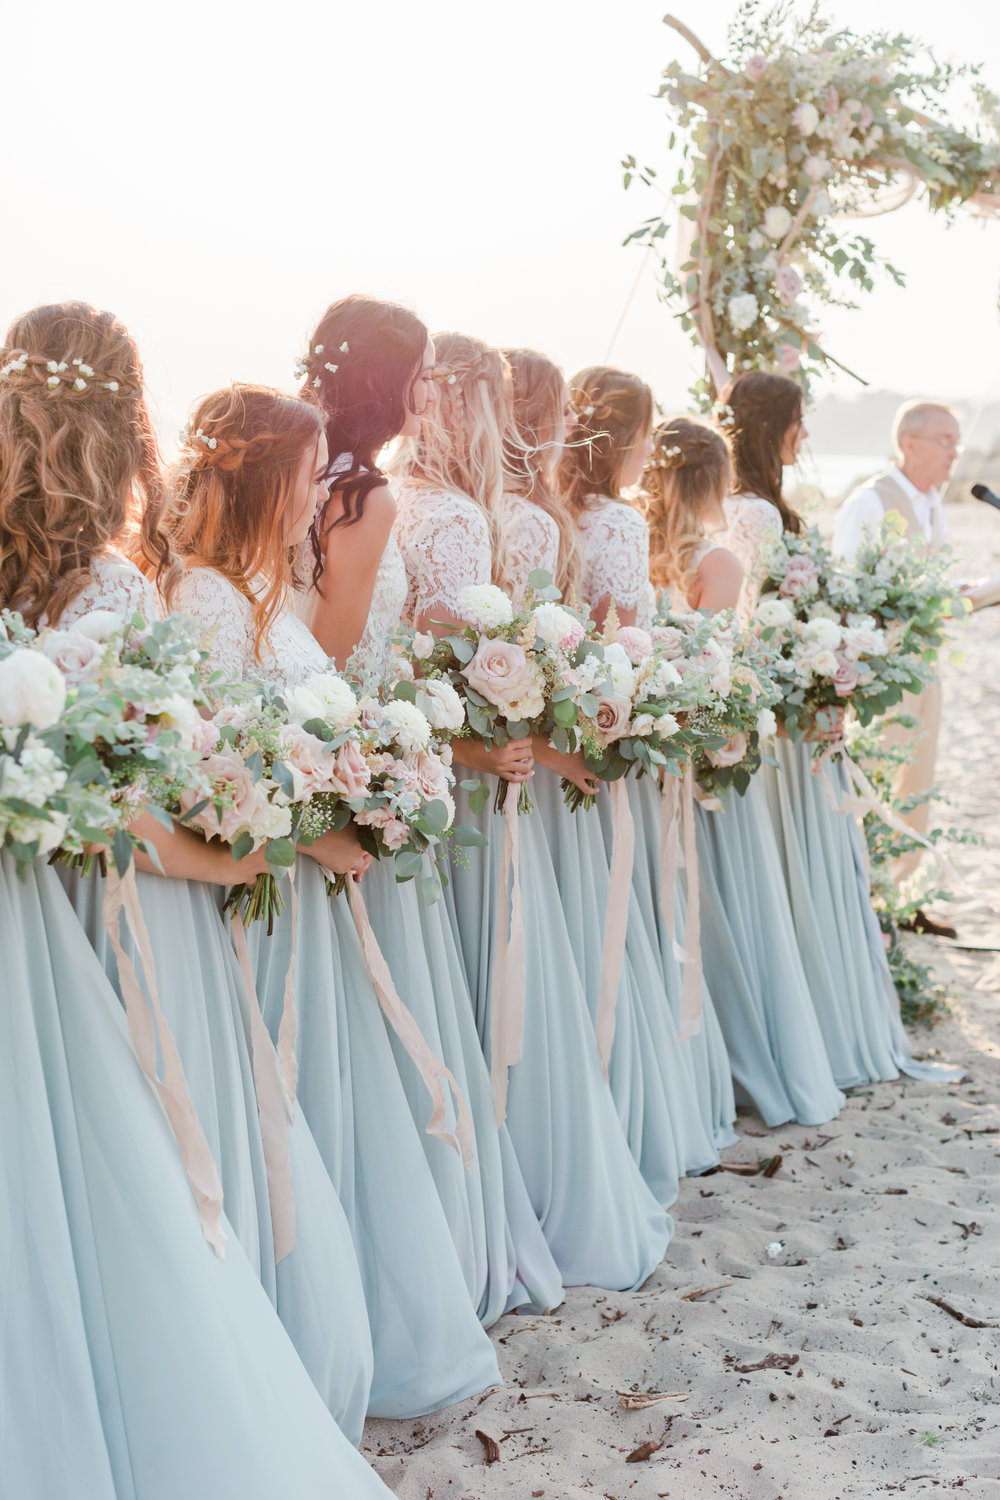 Destination Beach Wedding_Valorie Darling Photography-4063.jpg